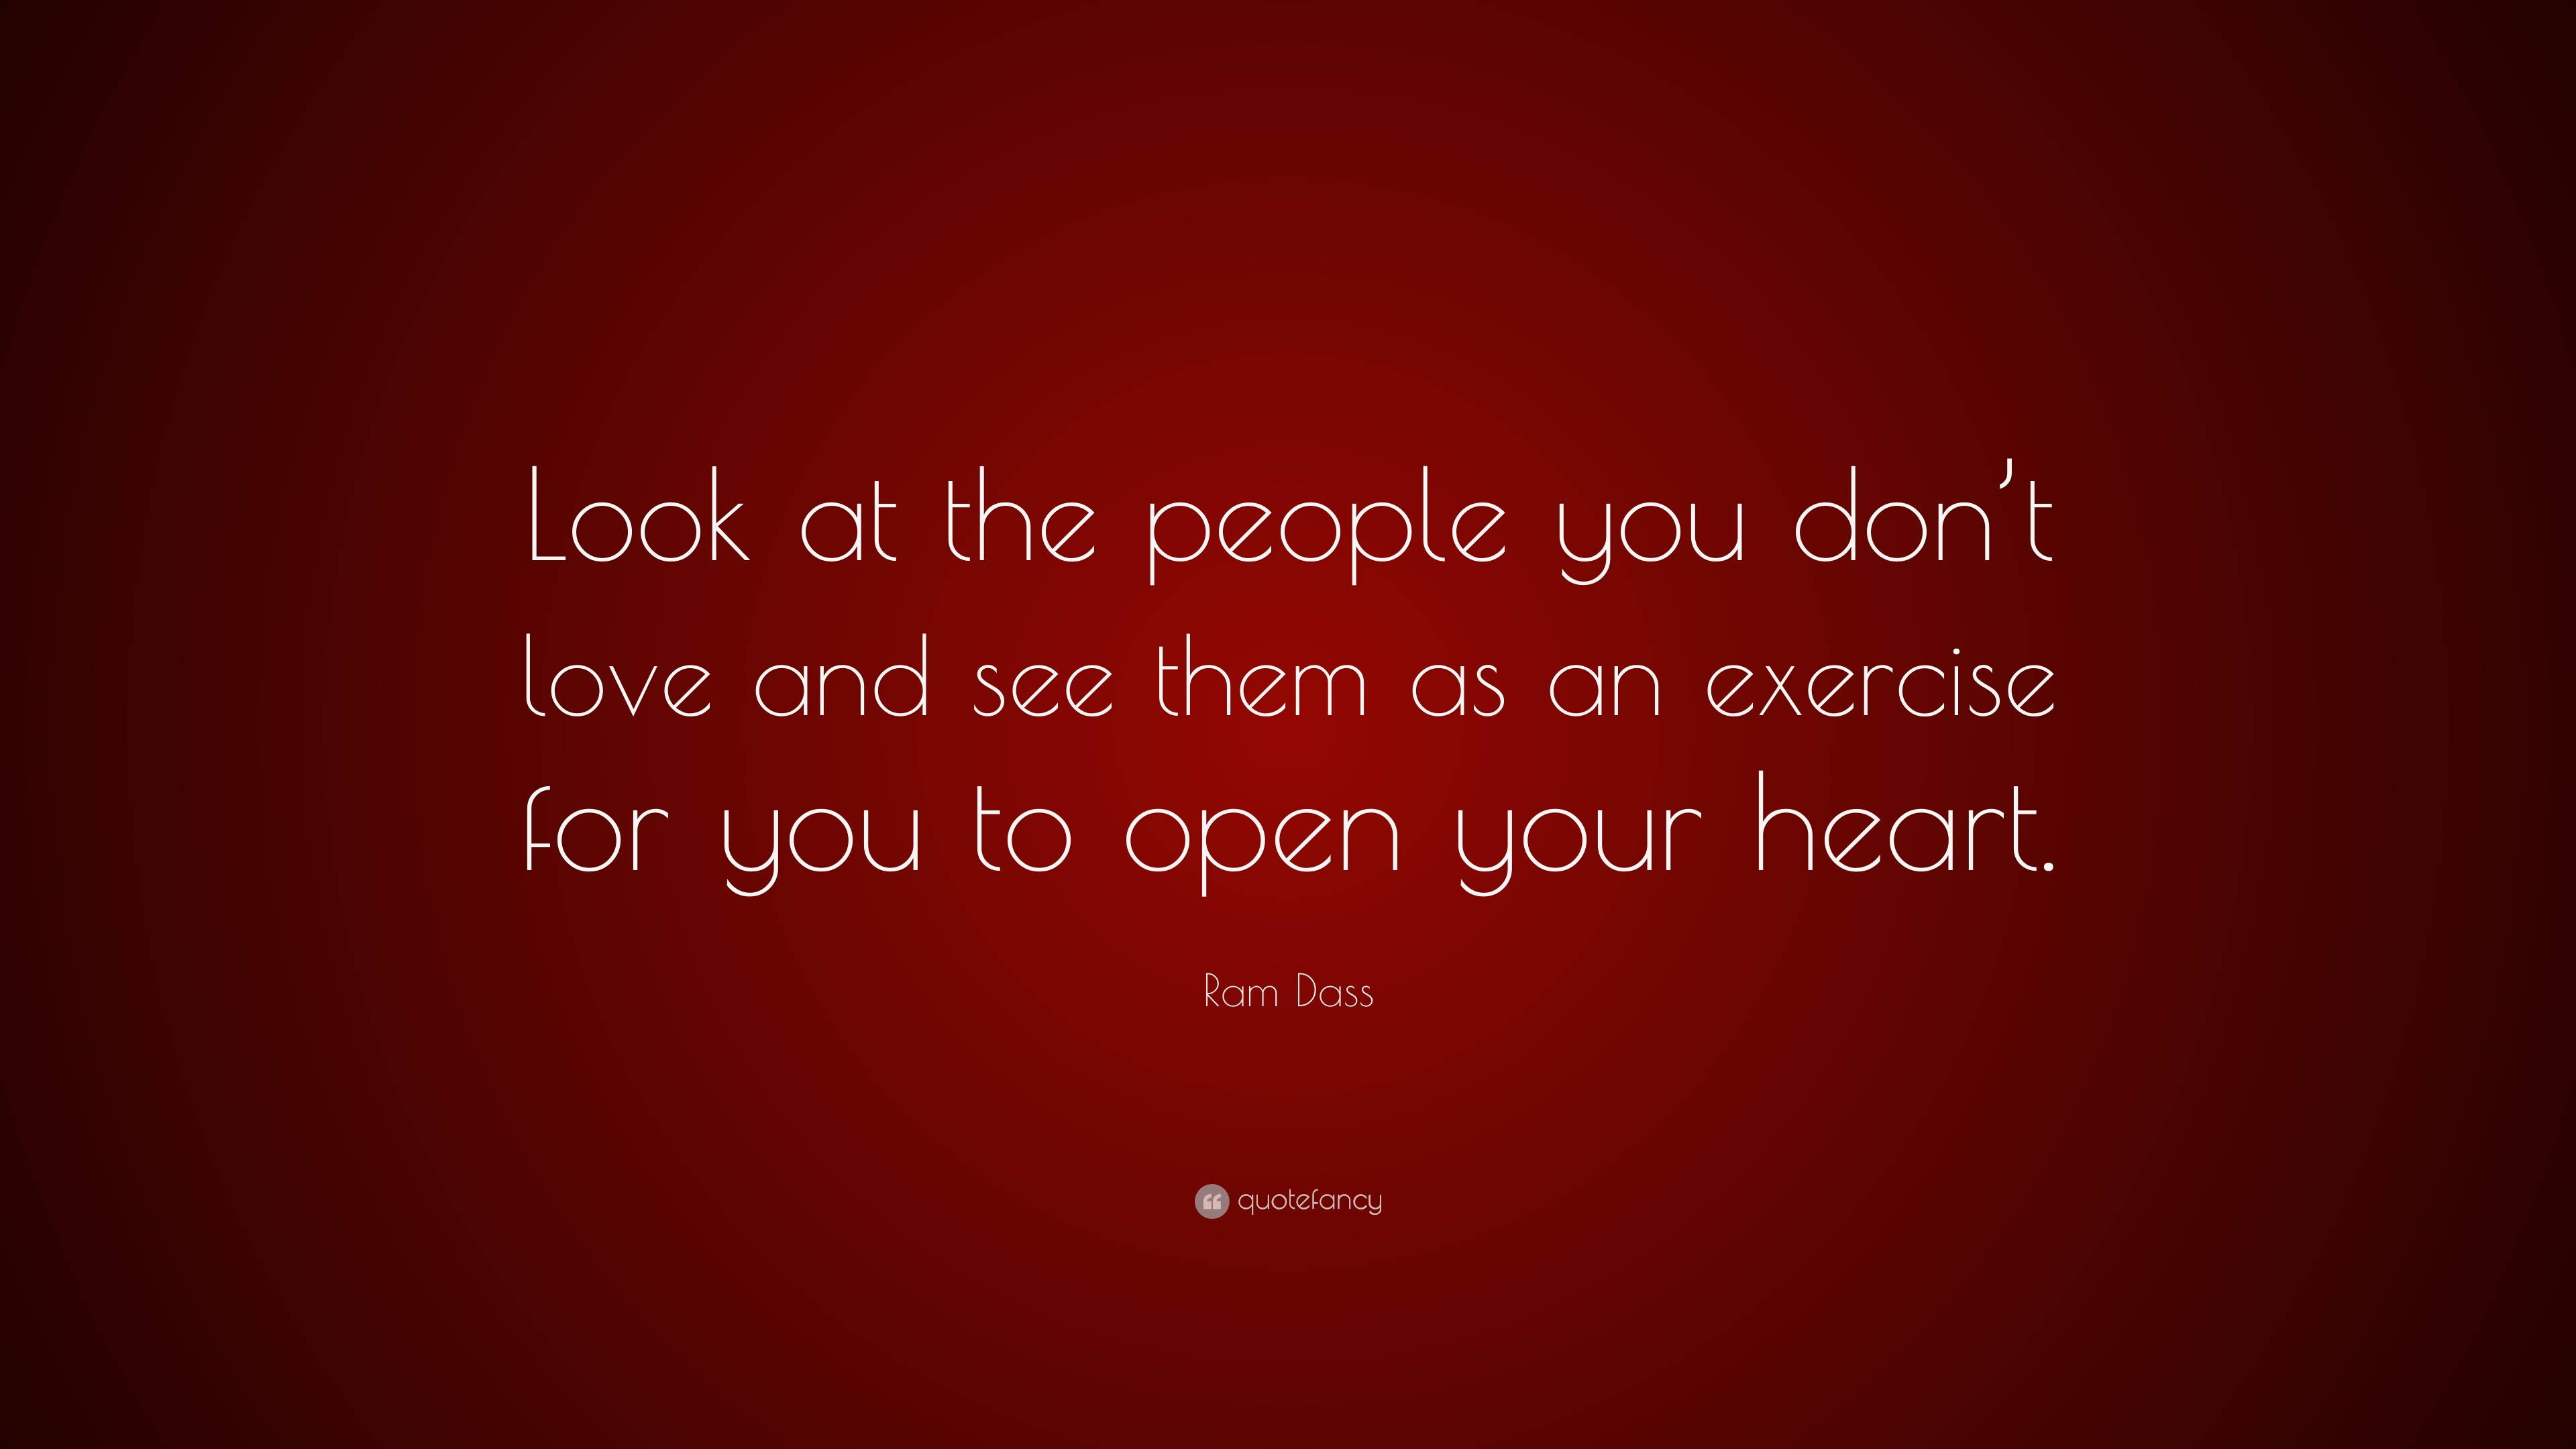 Ram Dass Quote Look At The People You Dont Love And See Them As